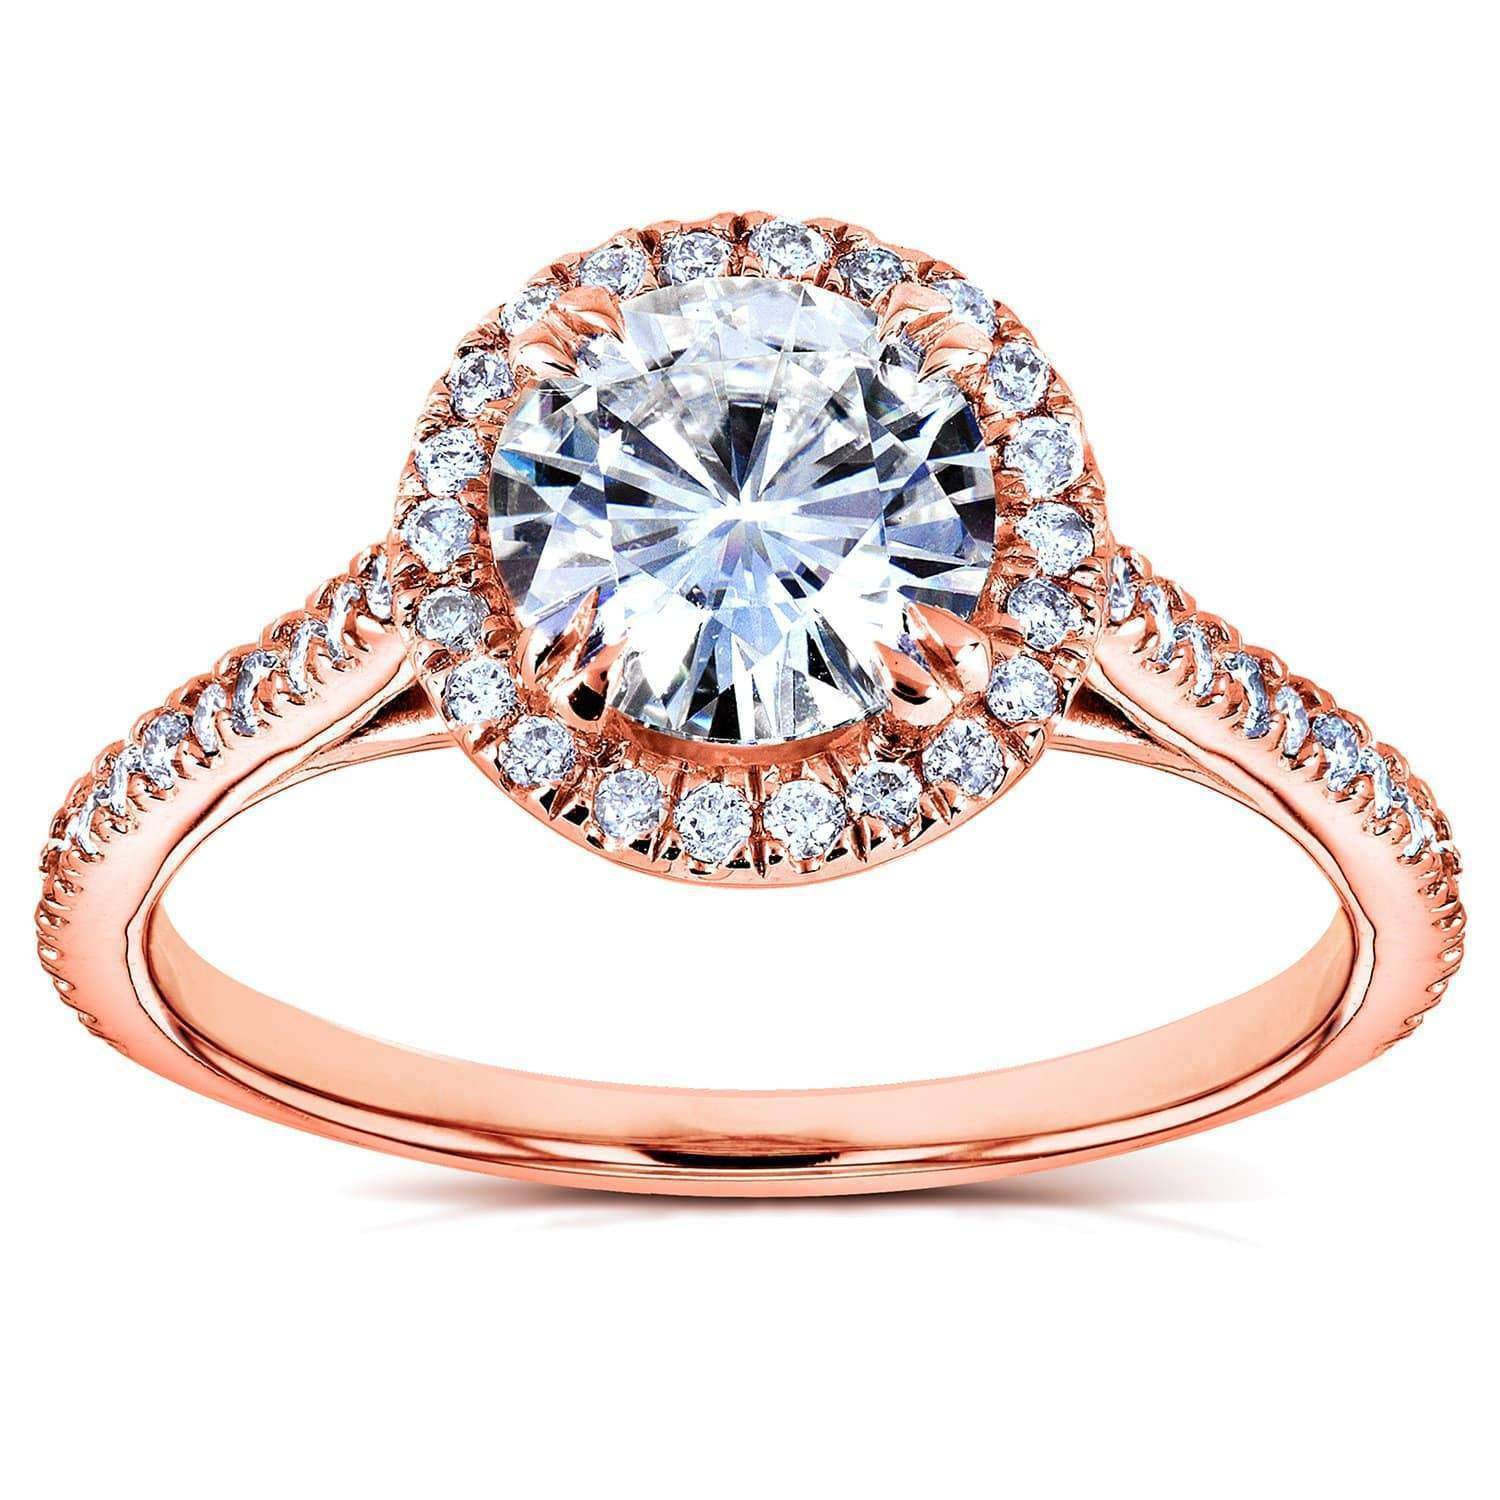 Reviews Round-cut Moissanite and Diamond Engagement Ring 1 1/4 CTW in 14k Rose Gold - 10